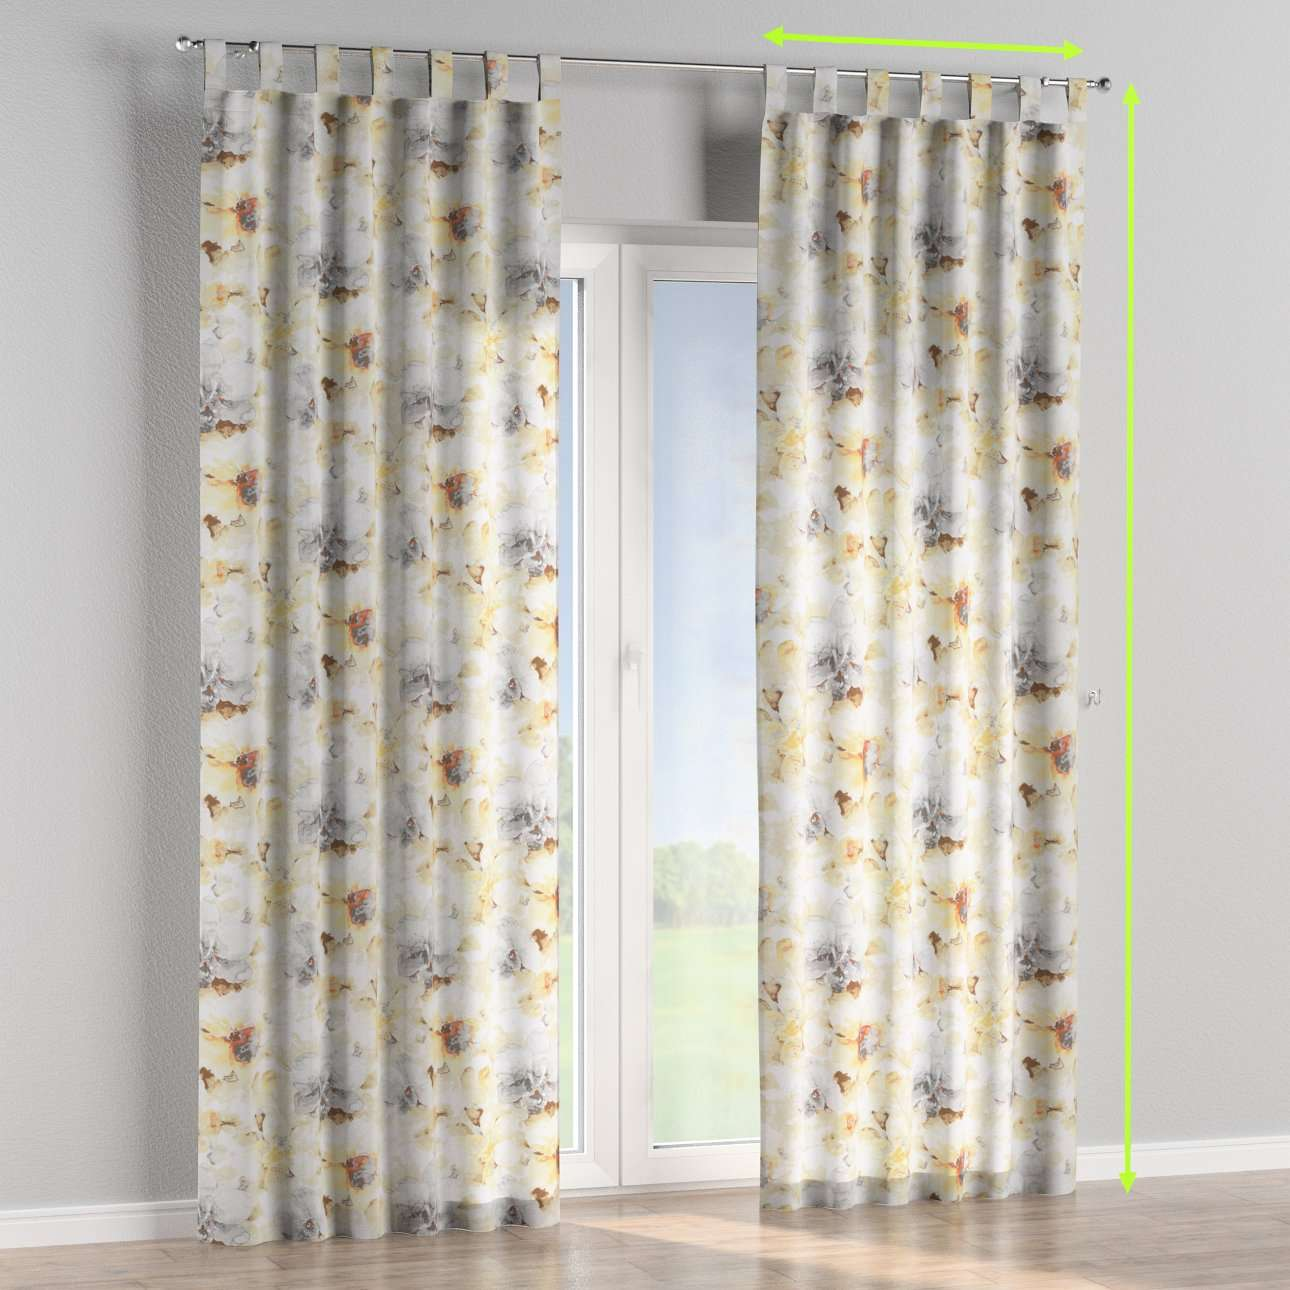 Tab top curtains in collection Acapulco, fabric: 141-33